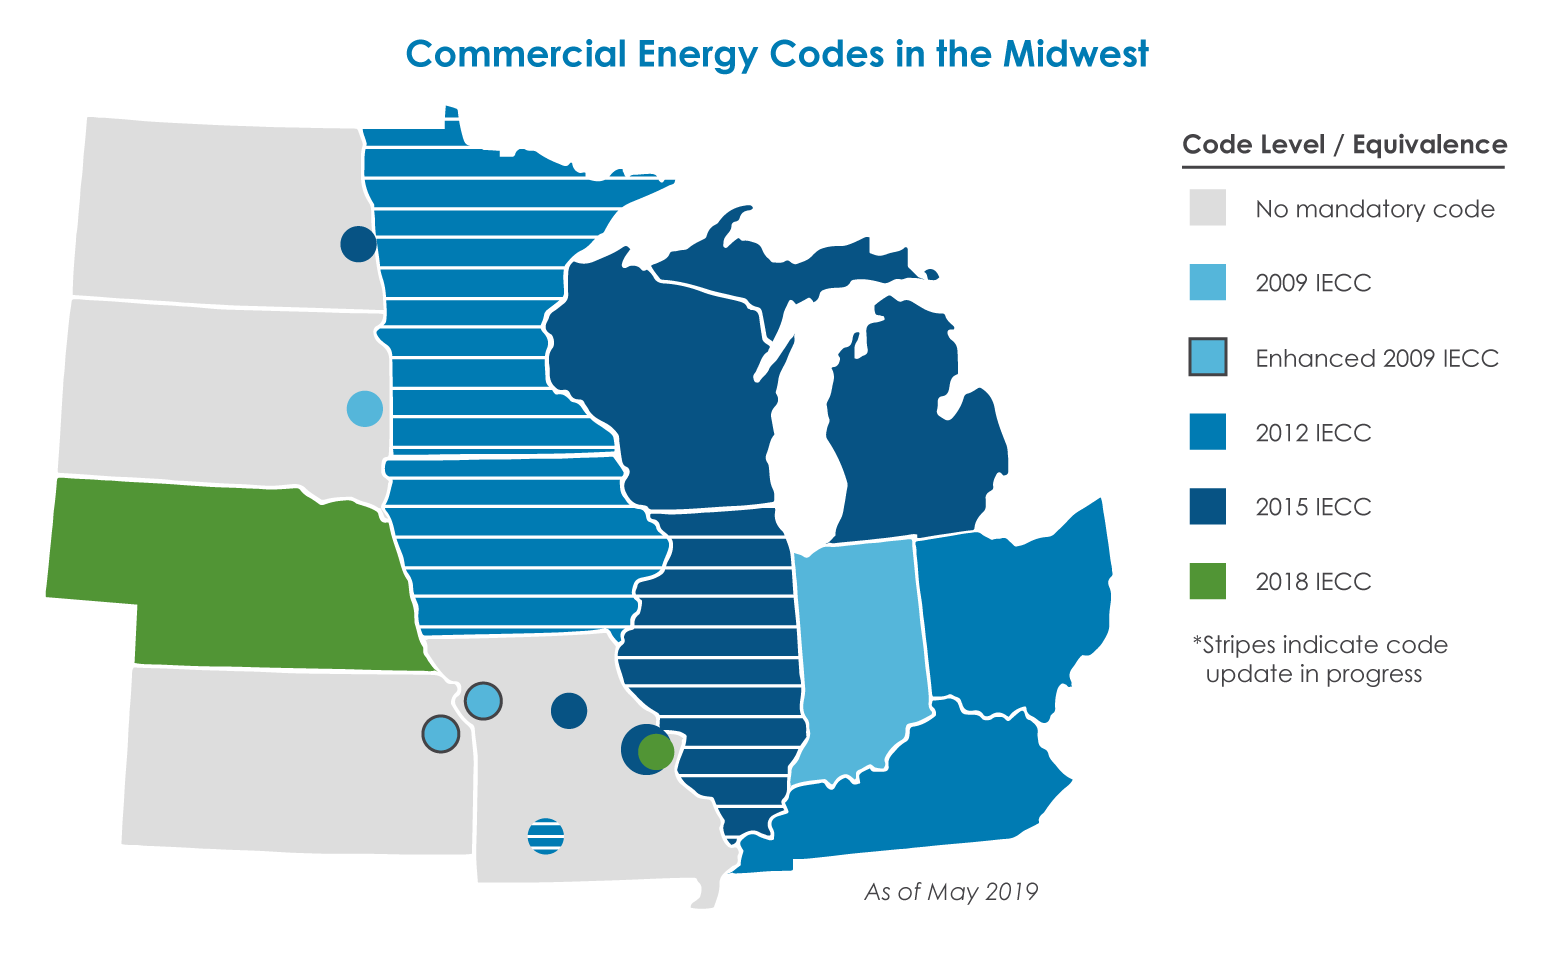 map of commercial energy code levels in the midwest